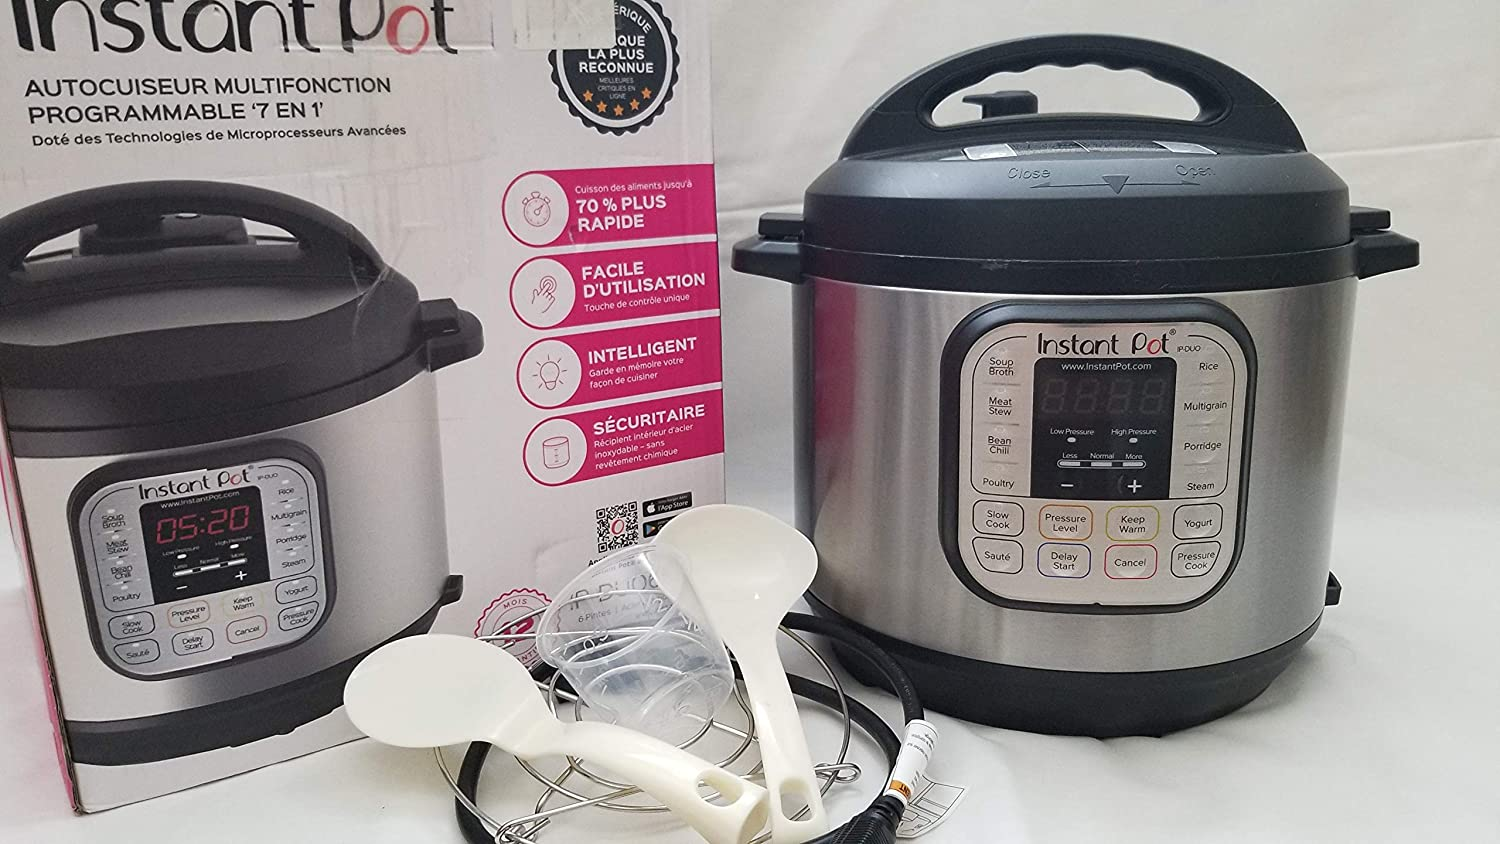 Instant Pot IP-DUO60 7-in-1 Programmable Pressure Cooker, 6Qt/1000W, Stainless Steel Cooking Pot and Exterior, Latest 3rd Generation Technology (3, DESIGN 1)